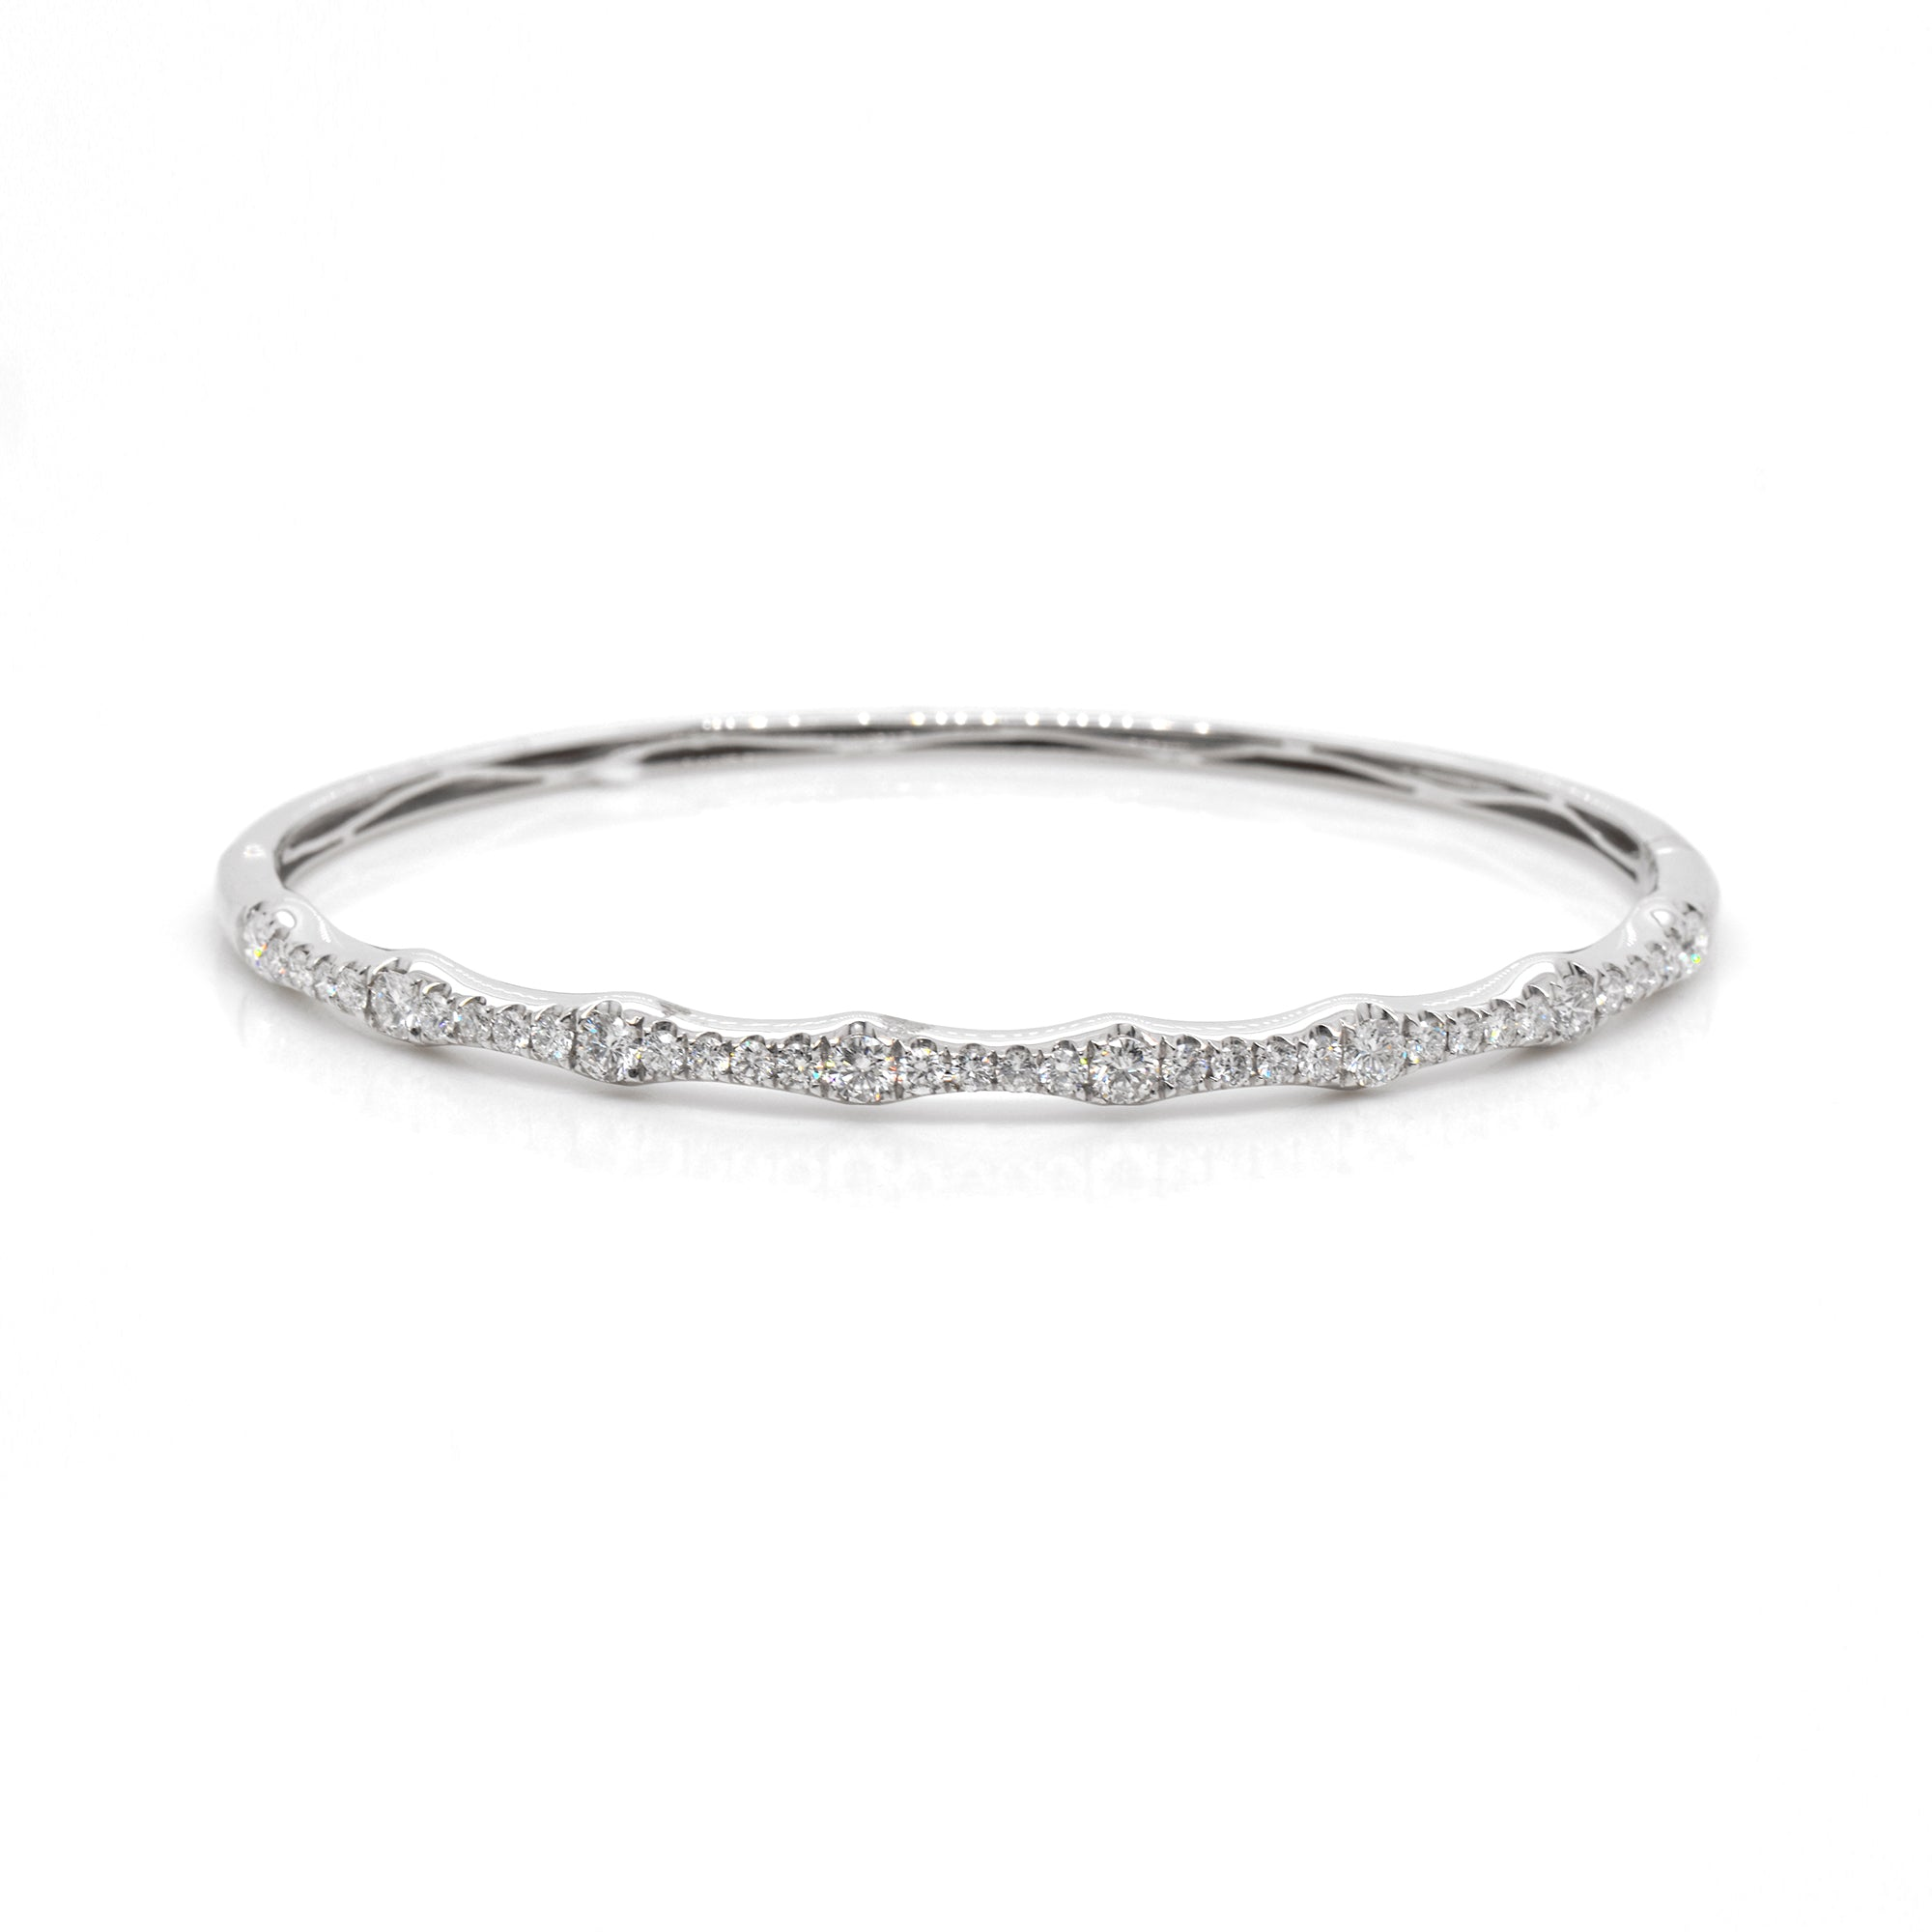 18K white gold diamond bangle featuring round brilliant diamonds